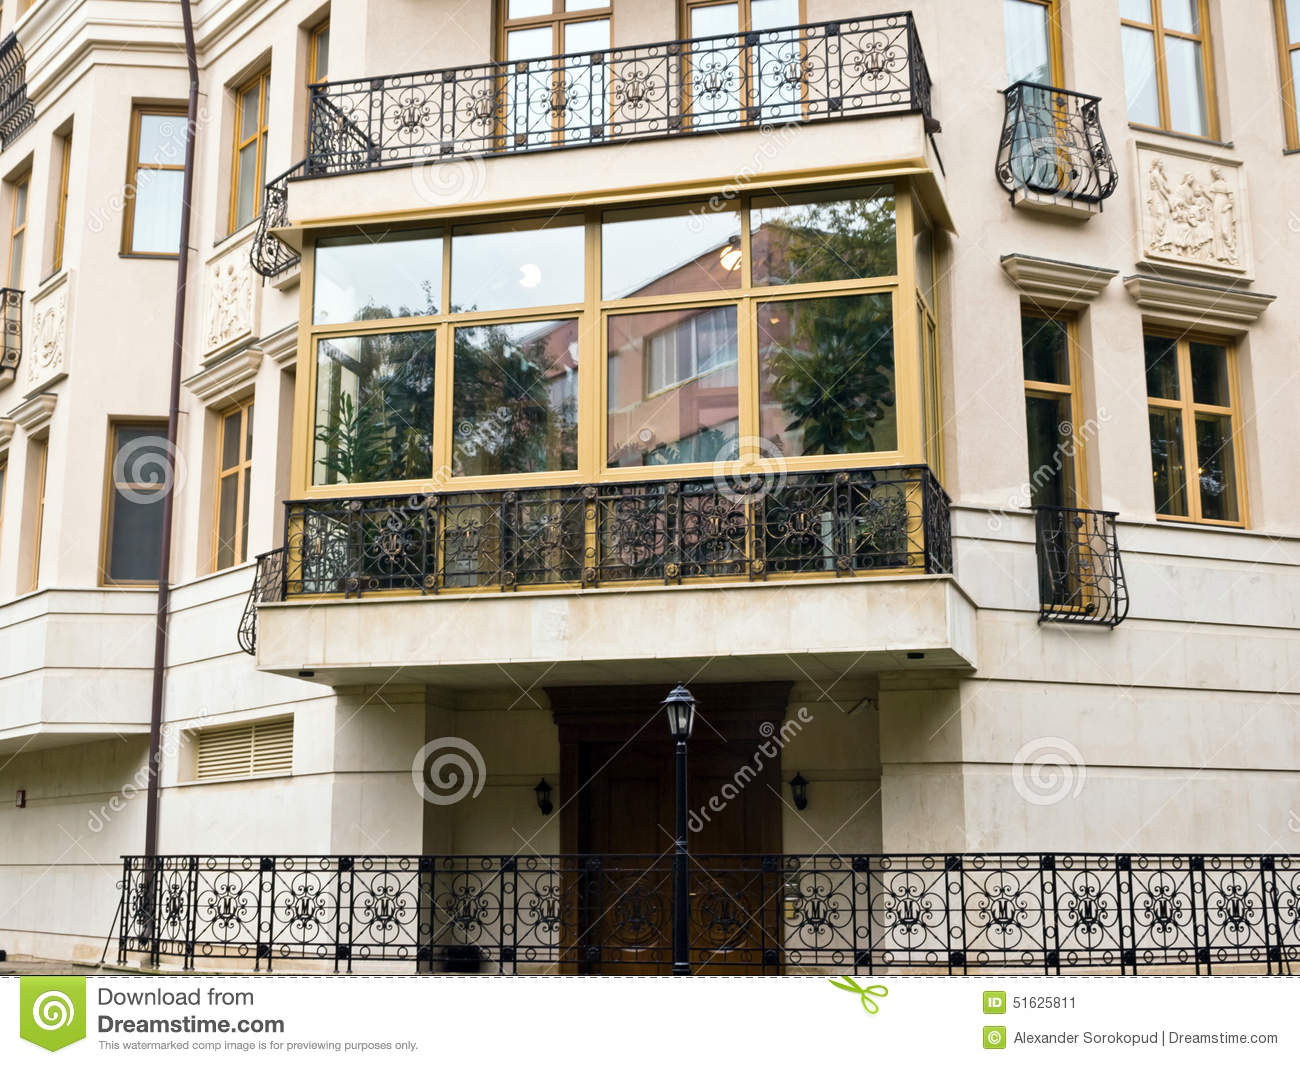 Where to order balcony glazing in Moscow 73